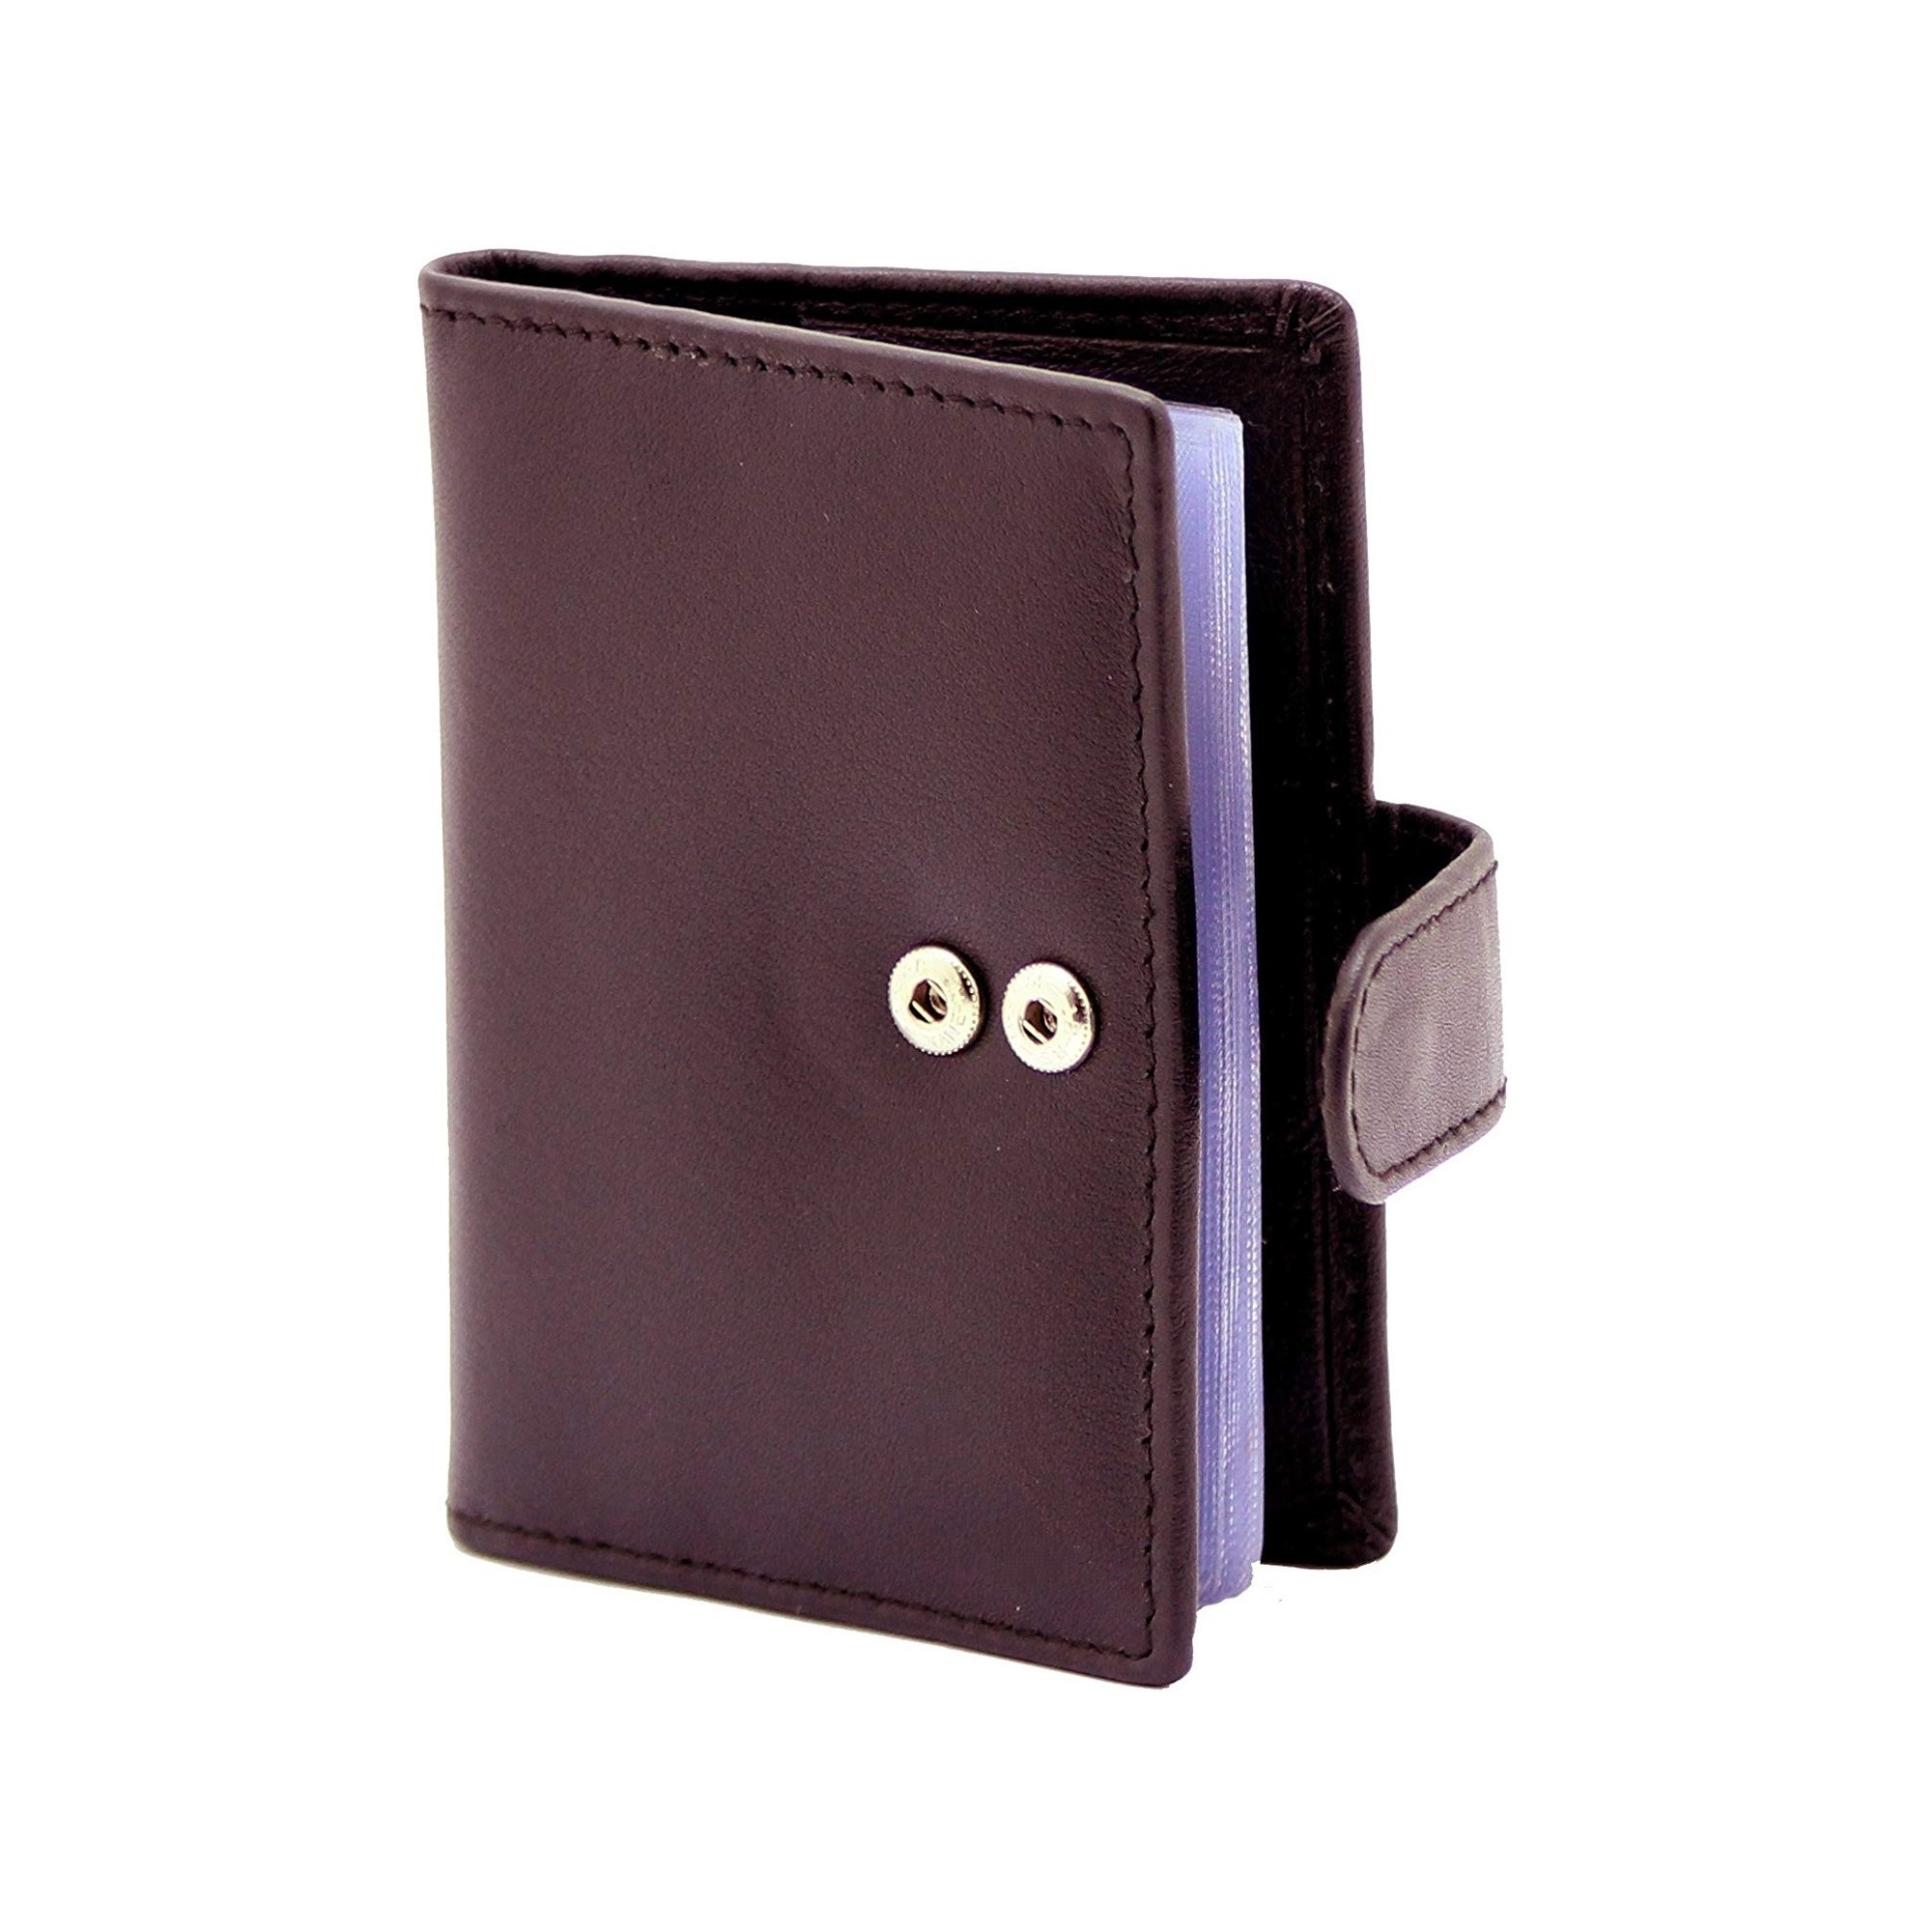 Leather Card Holder Wallet Manufacturers In Ontario, Card Holder Wallet Suppliers In Ontario, Card Holder Wallet Wholesalers In Ontario, Card Holder Wallet Traders In Ontario